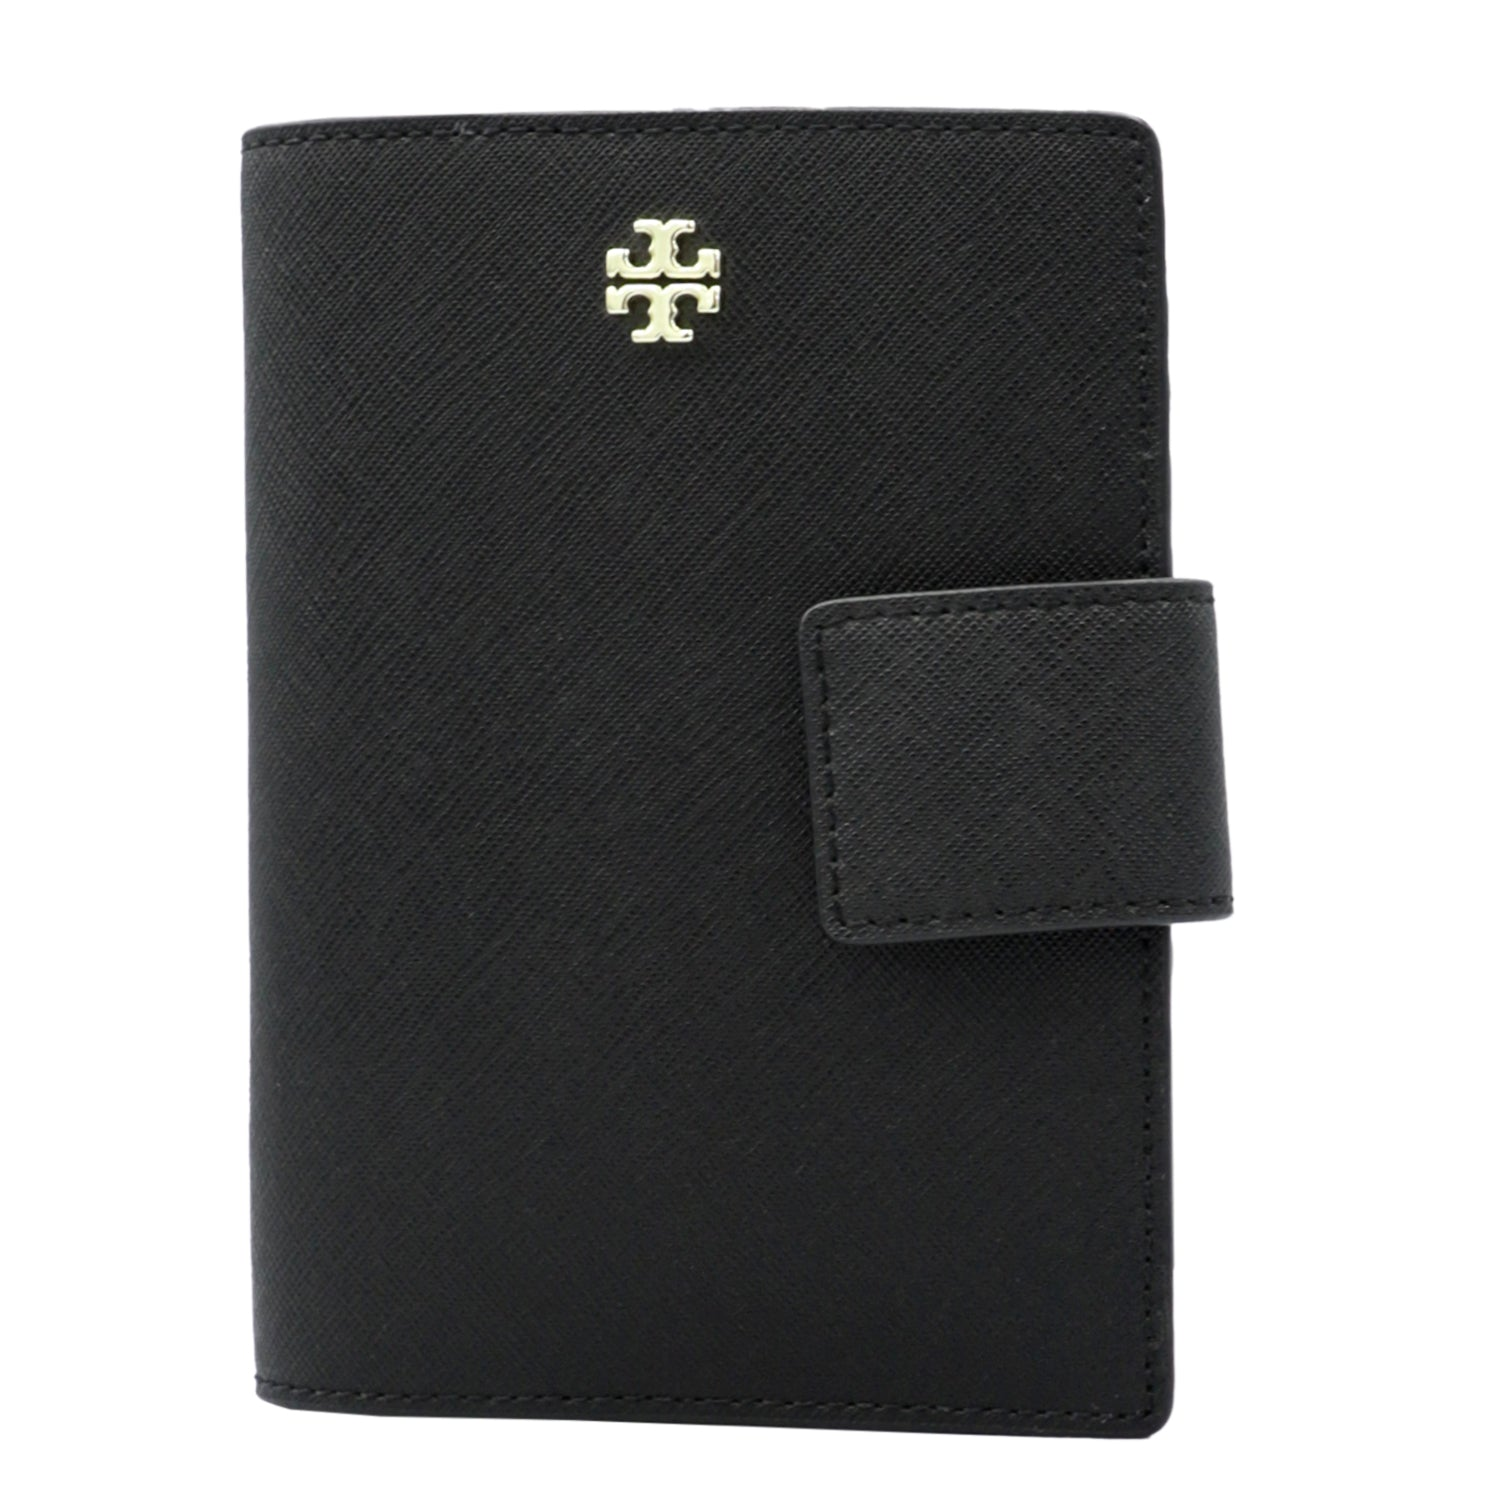 Black Emerson Leather Passport Holder | Shop TORY BURCH Online India